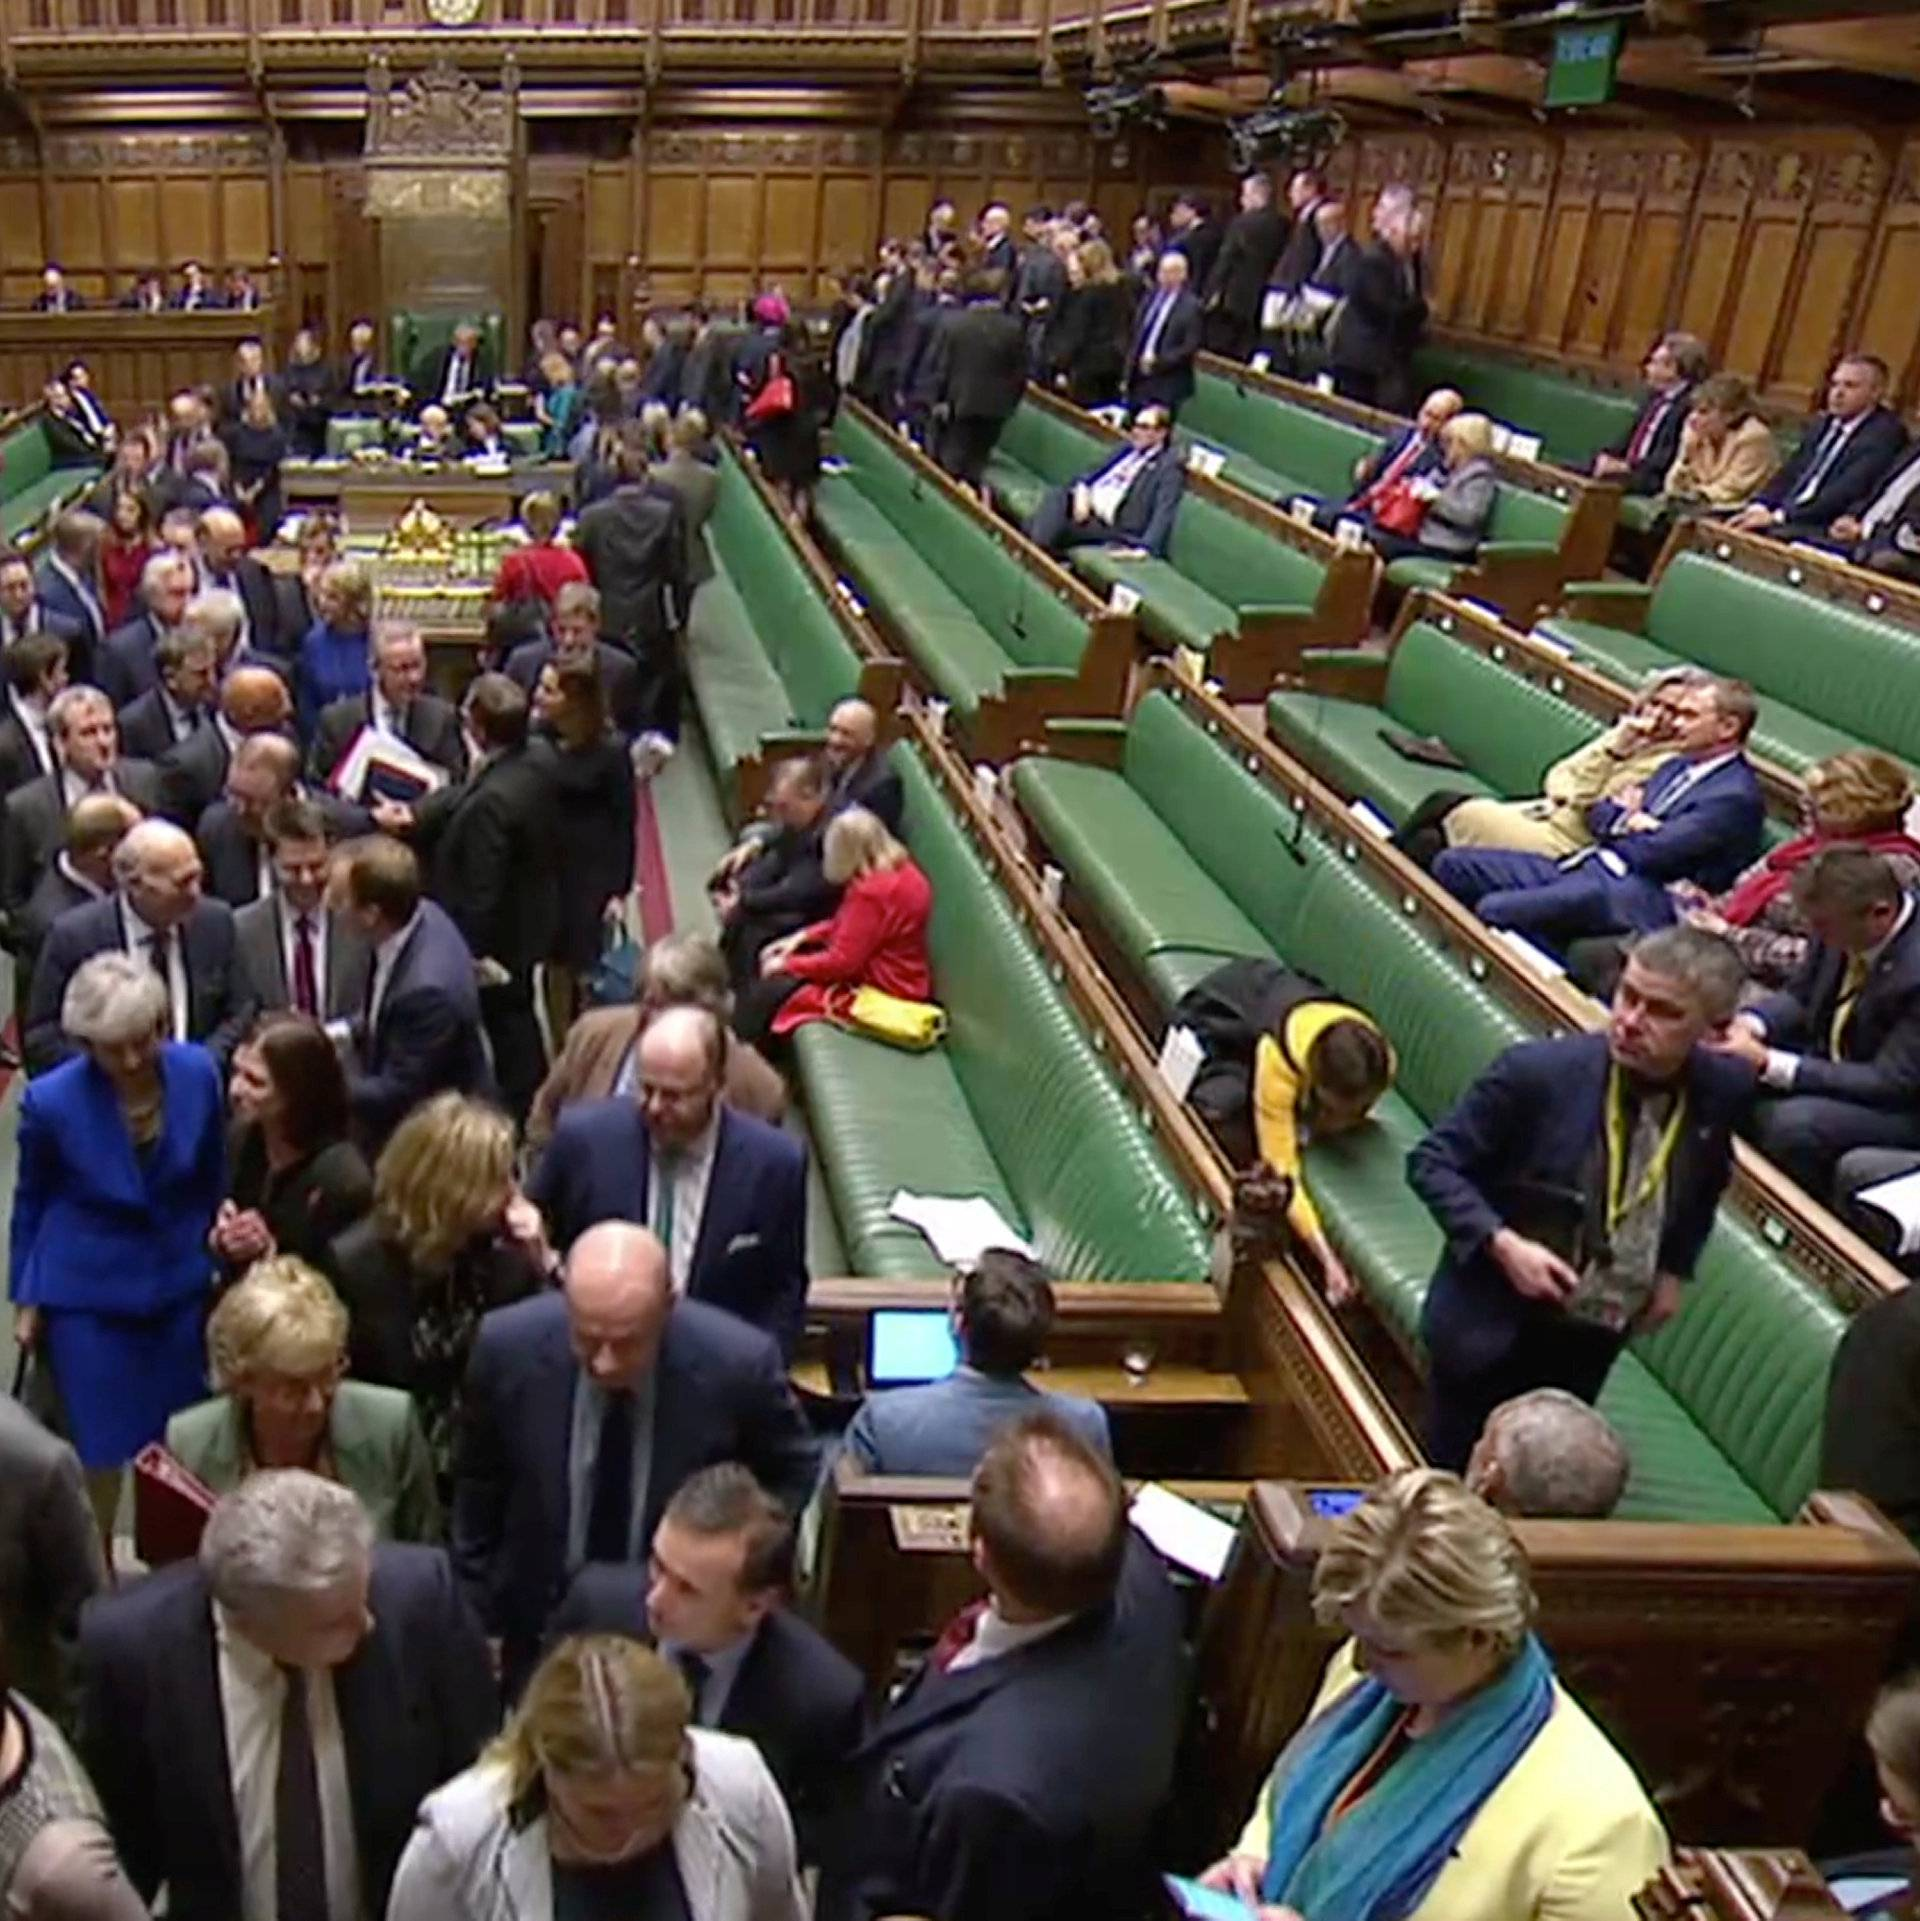 MP's leave the chamber to vote on a motion of no confidence after Parliament rejected Prime Minister Theresa May's Brexit deal, in London